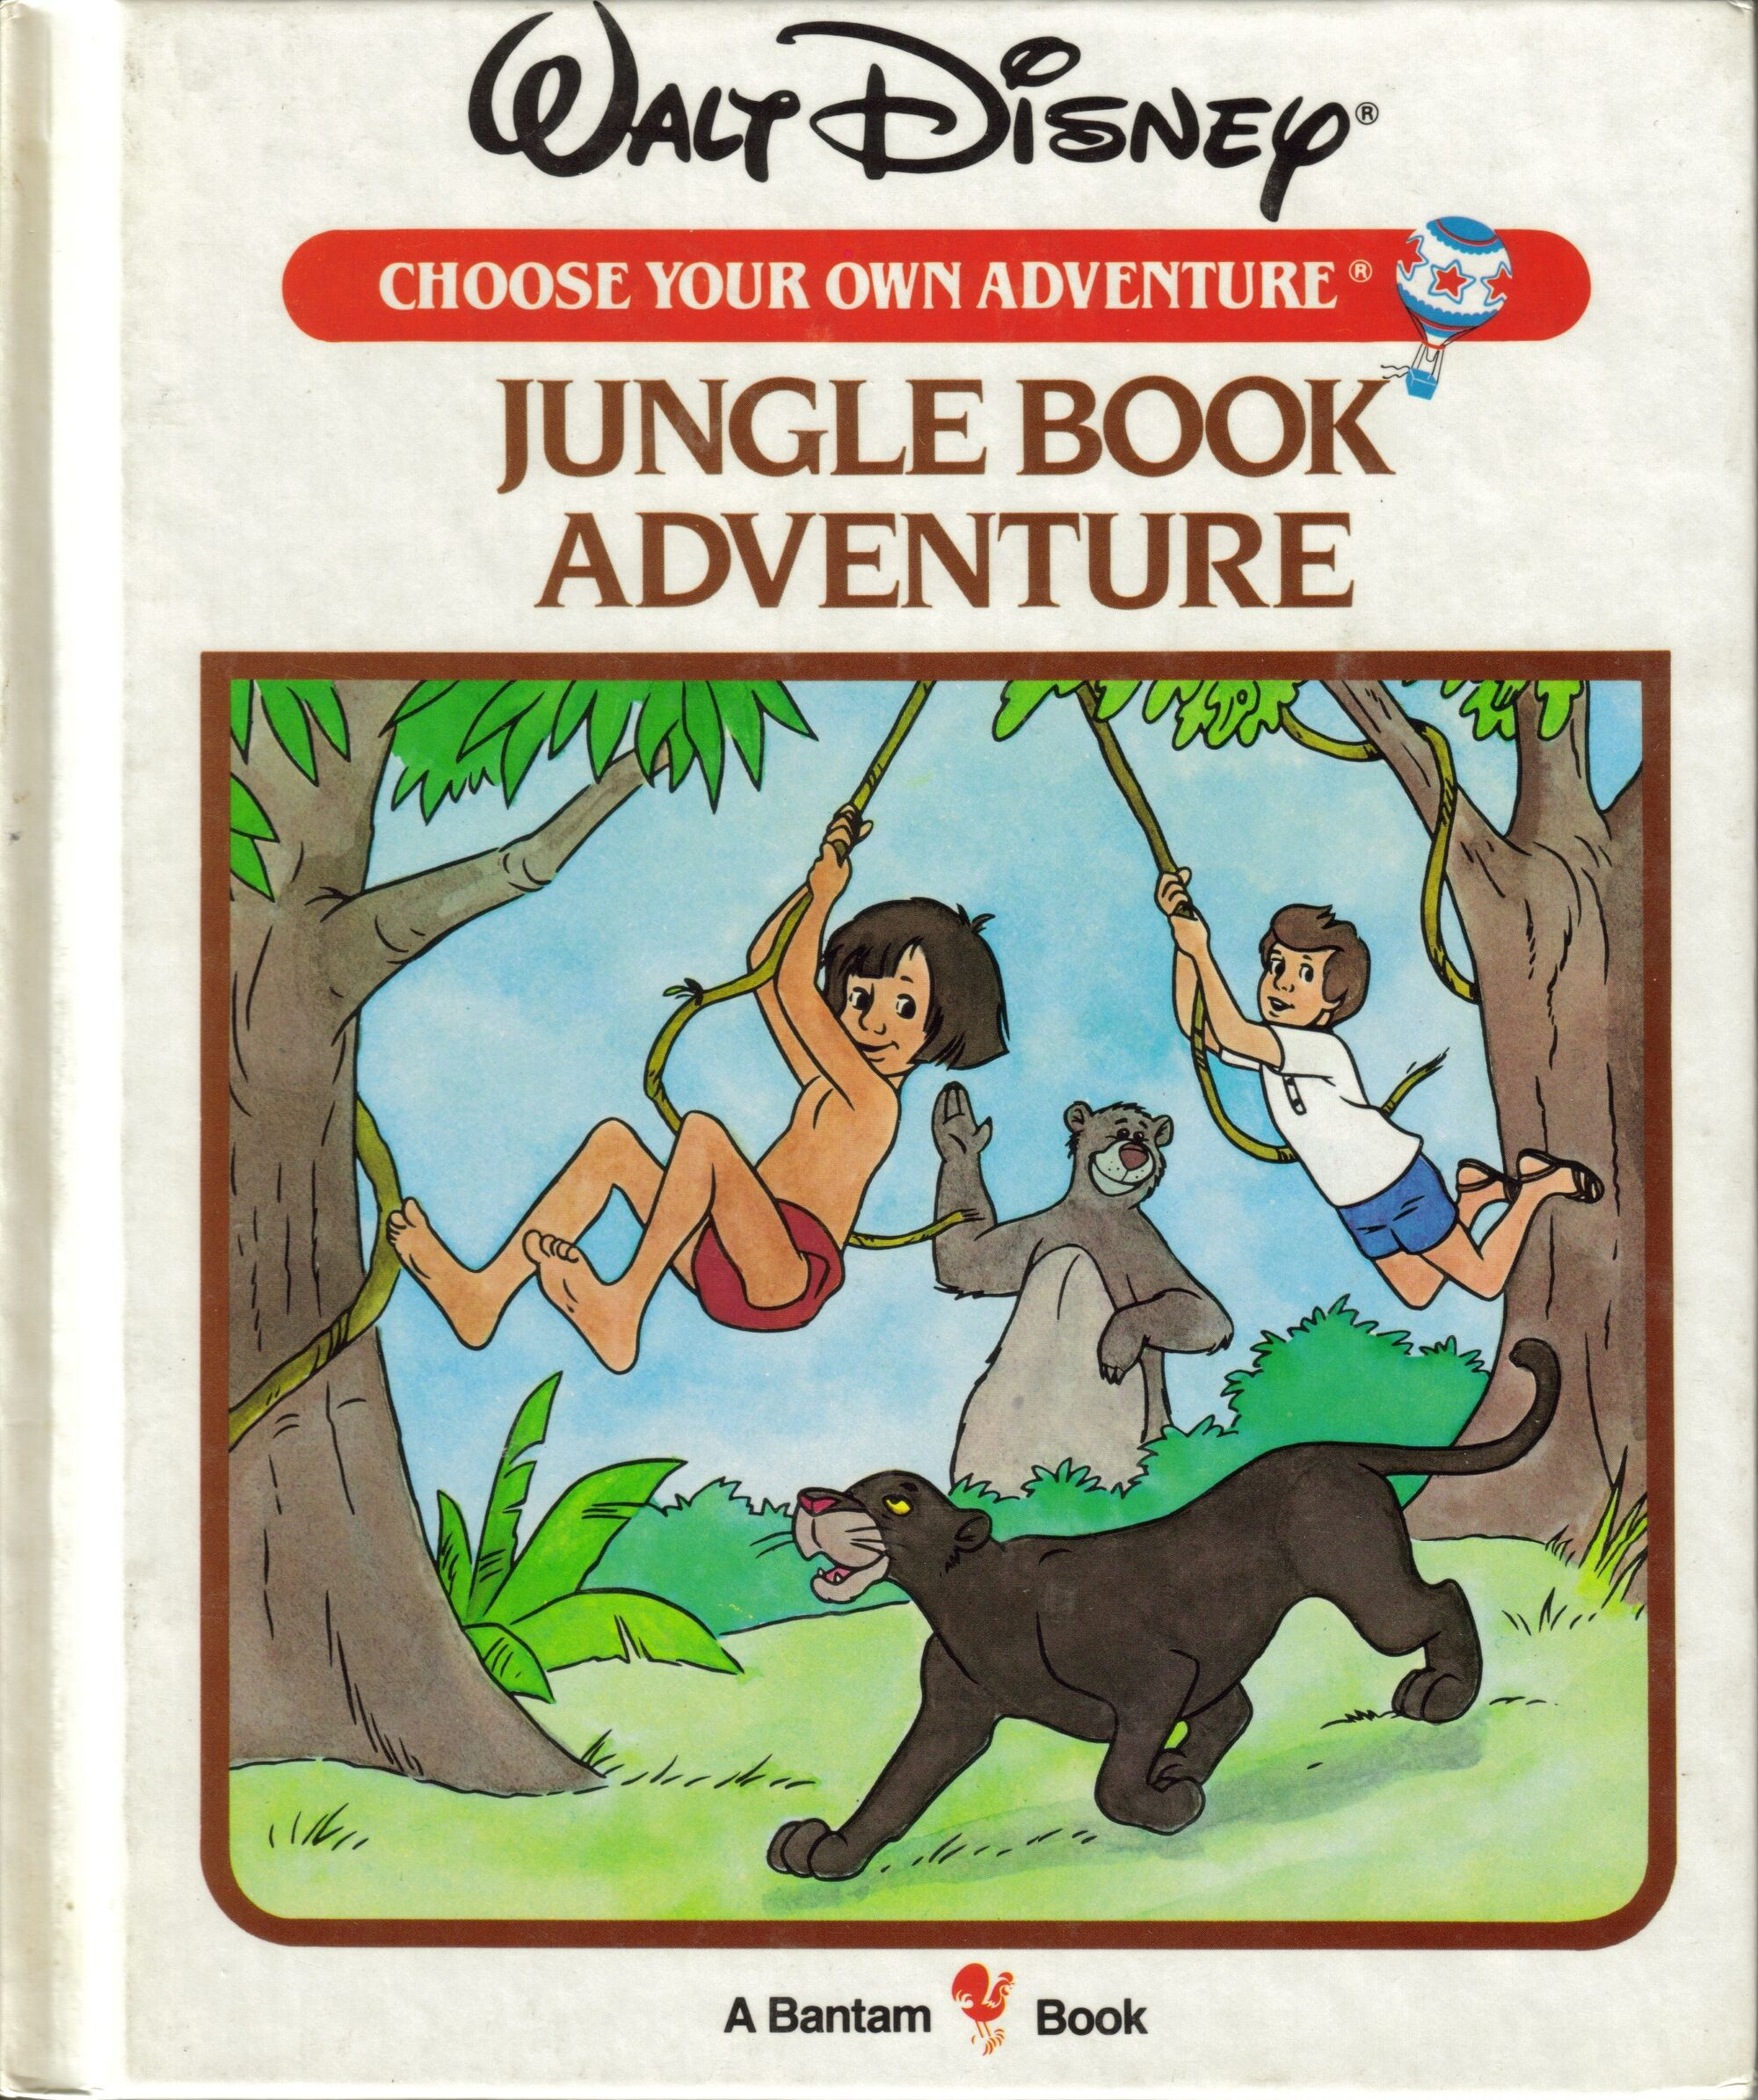 Jungle Book Adventure | Disney Wiki | FANDOM powered by Wikia